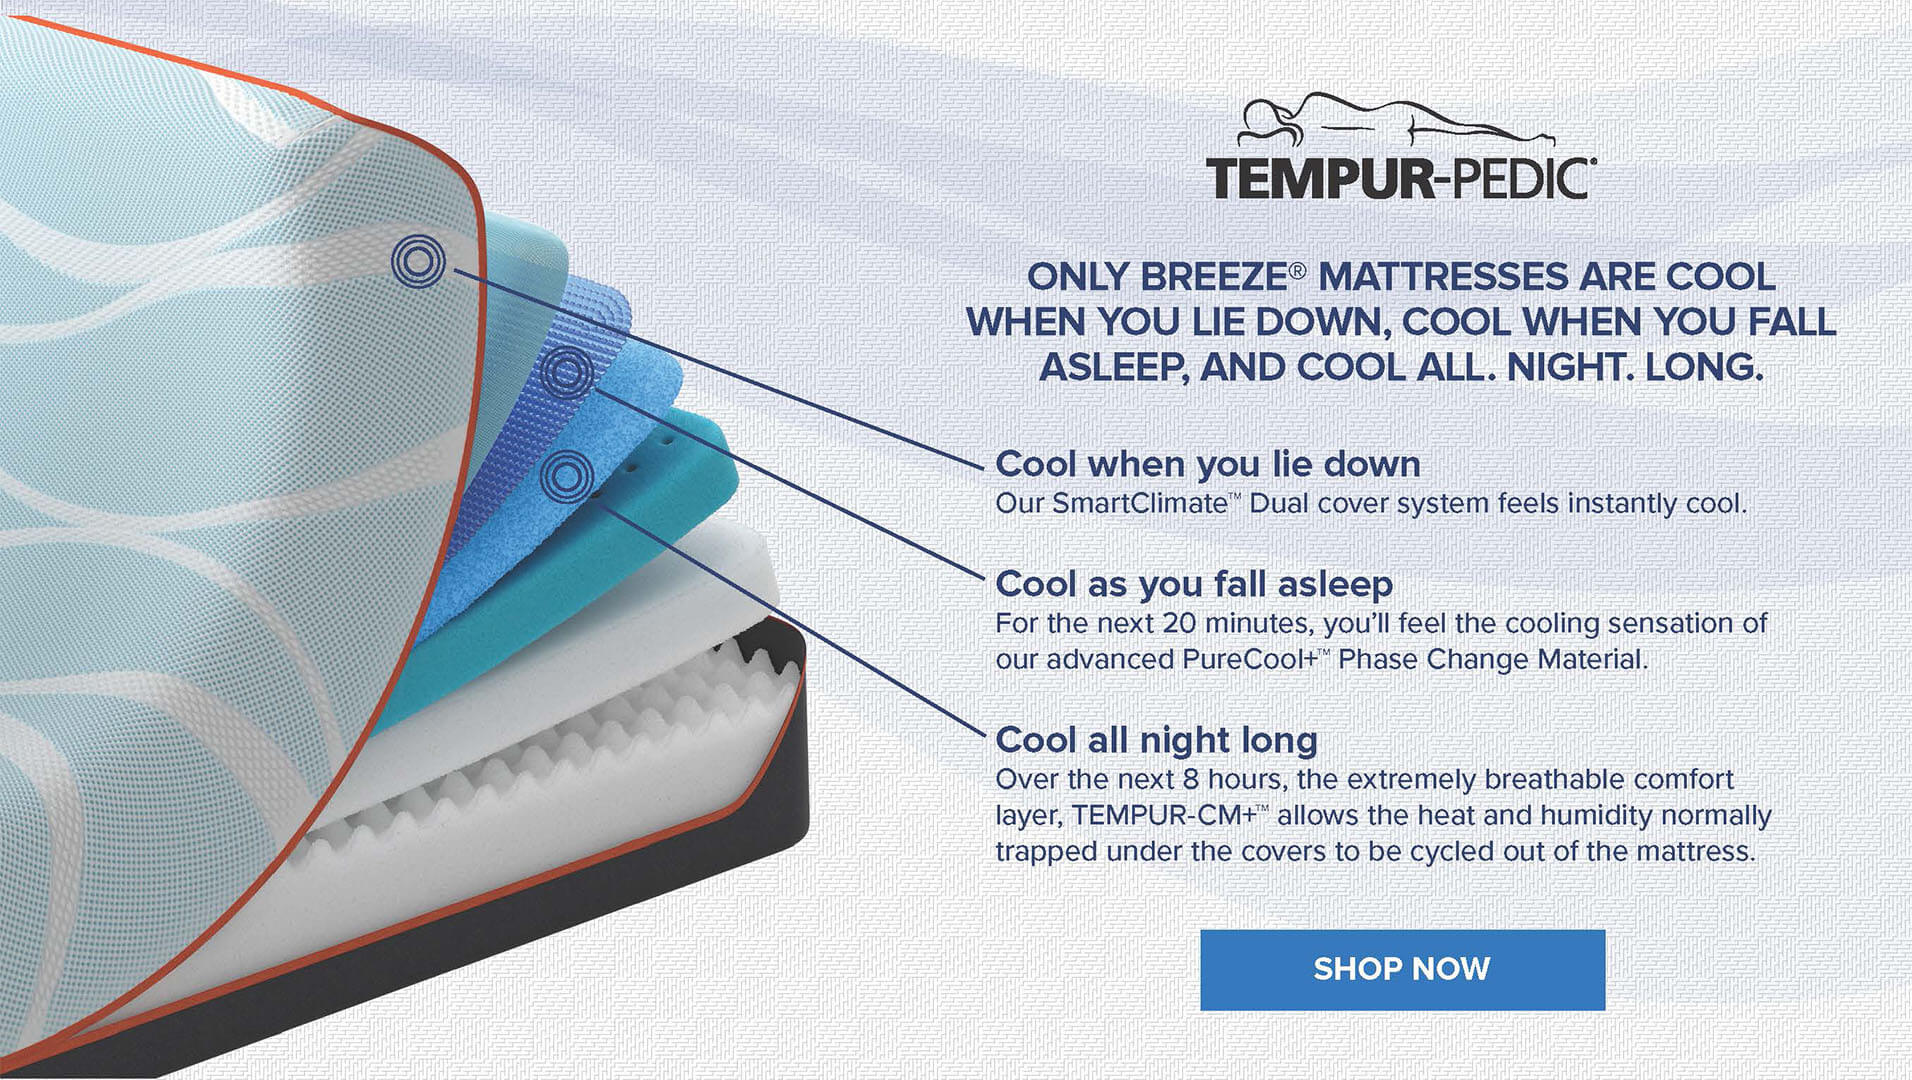 Chill Out - Tempur-Pedic